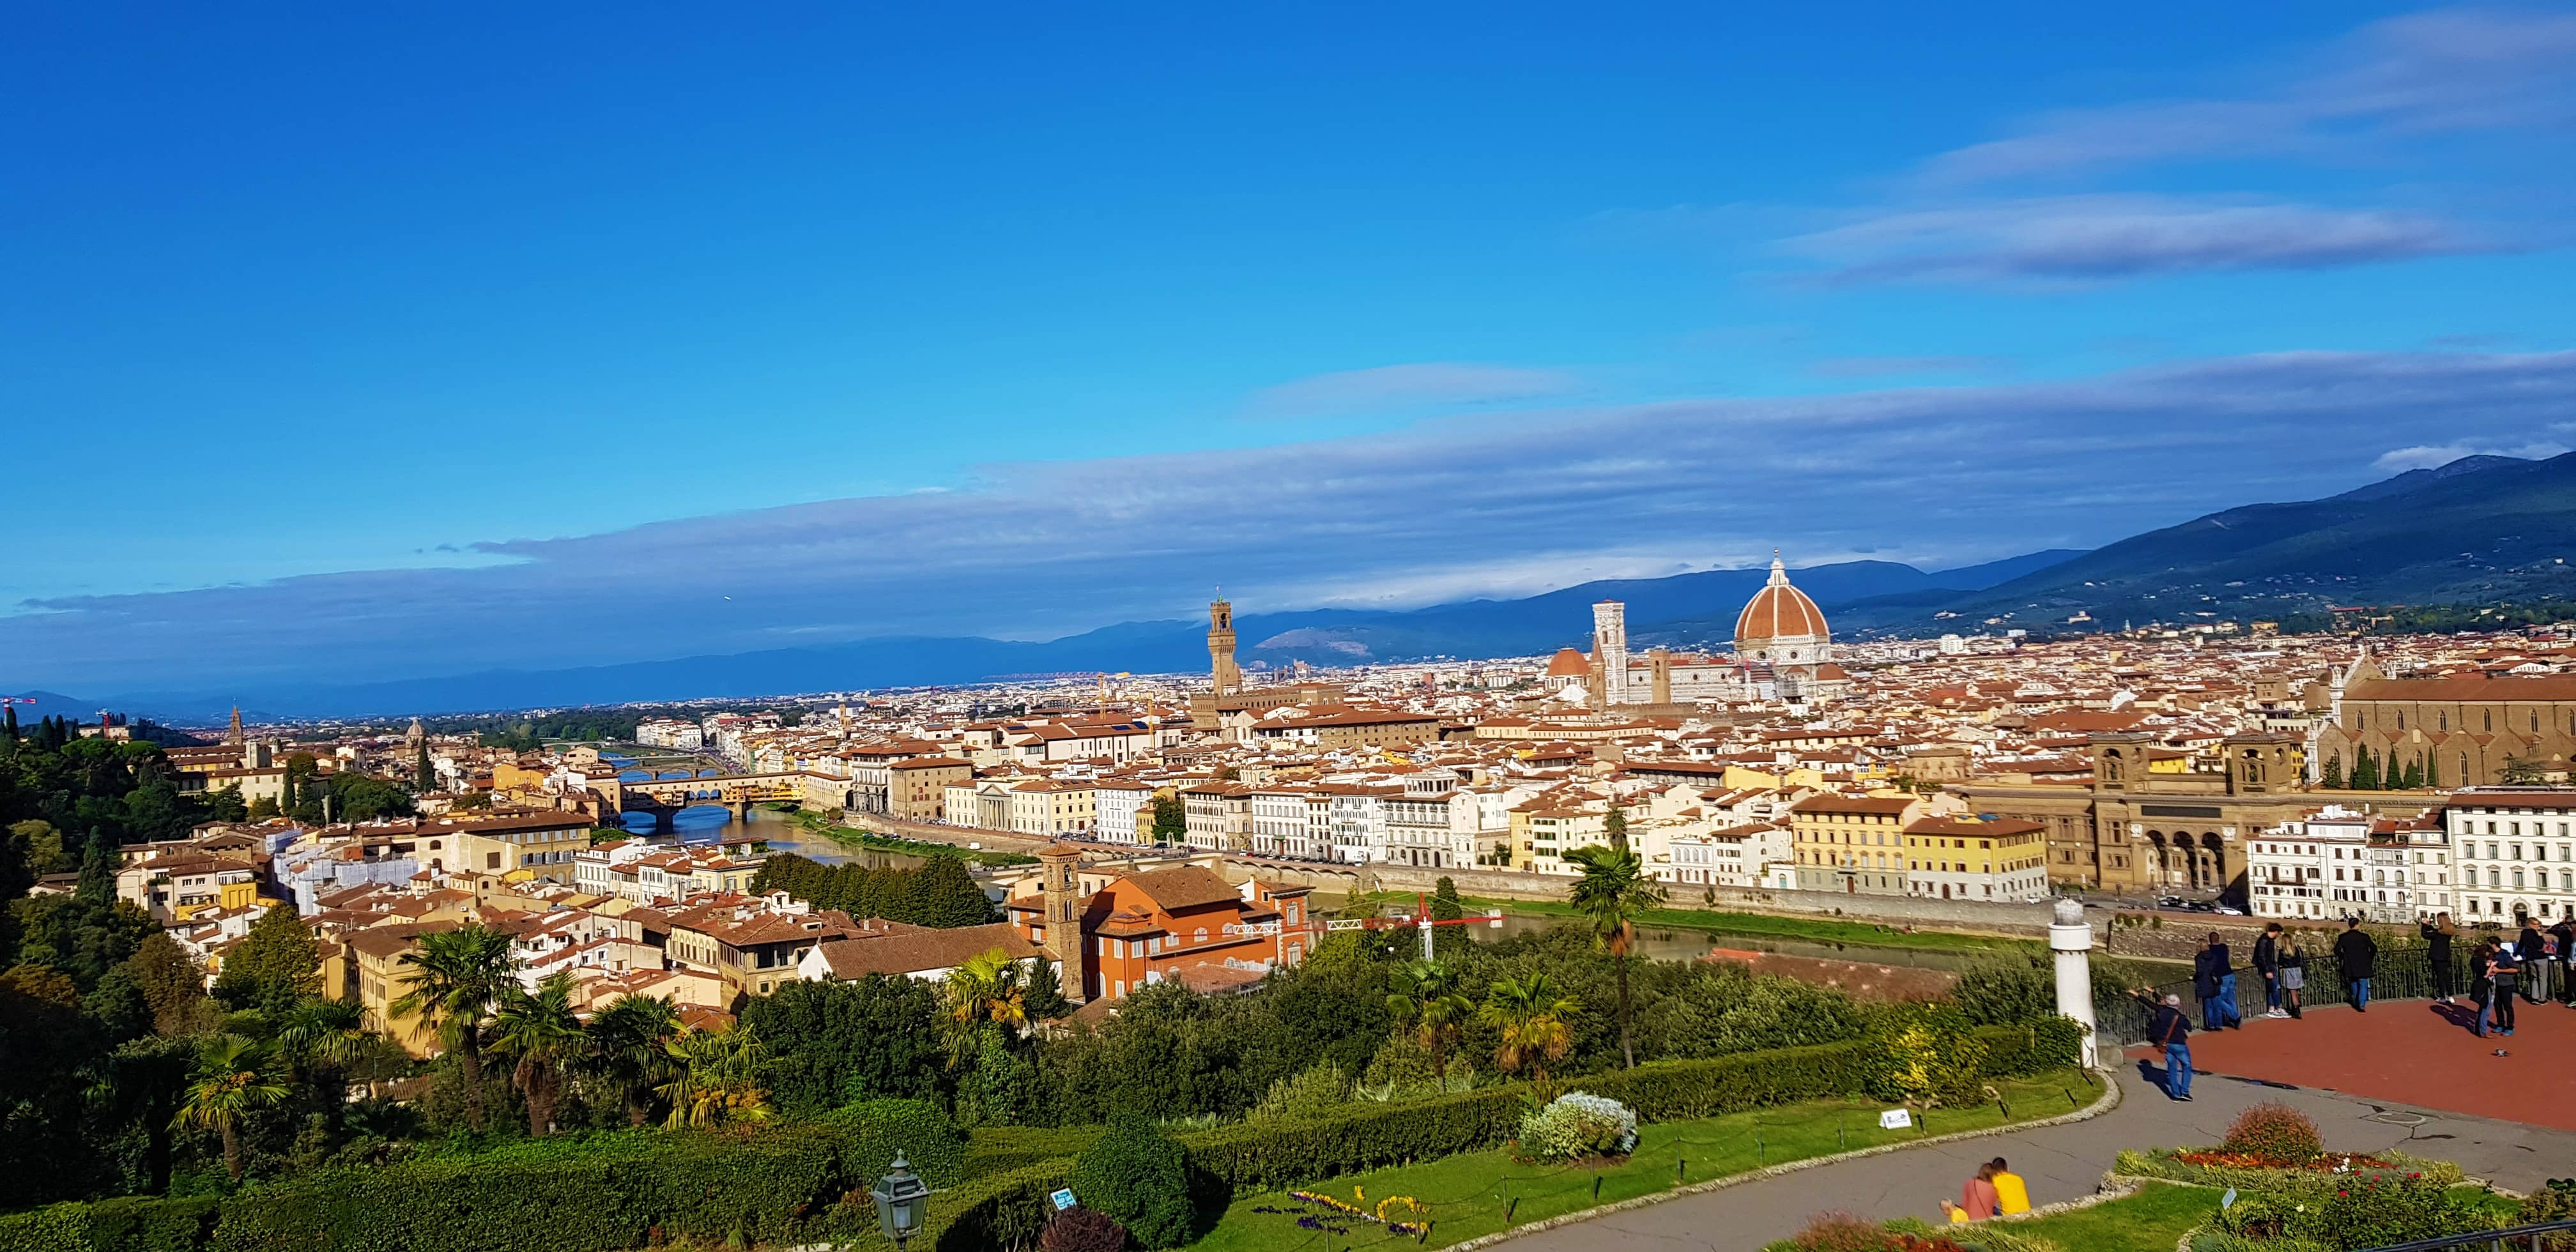 Is Florence Italy worth seeing